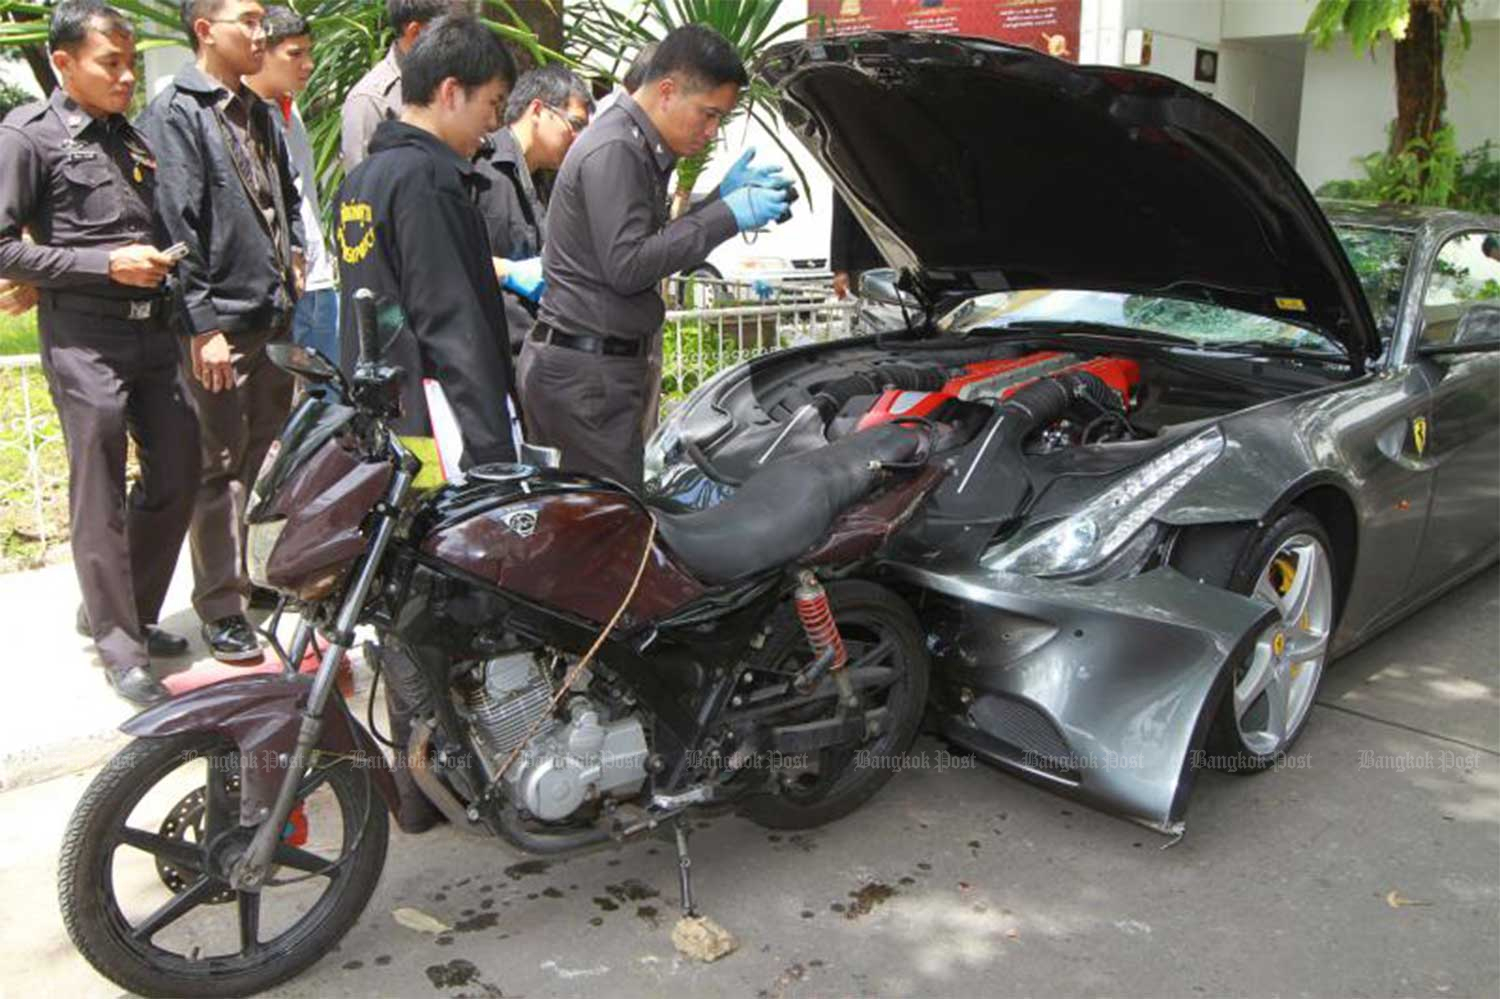 A file photo on Sept 4, 2012 shows Forensic police inspecting a motorcycle belonging to Pol Snr Sgt Maj Wichian Klanprasert of Thong Lor police station and a Ferrari driven by Vorayuth Yoovidhya, the youngest son of Red Bull executive Chalerm Yoovidhya, following the accident. (Photo: Somchai Poomlard)